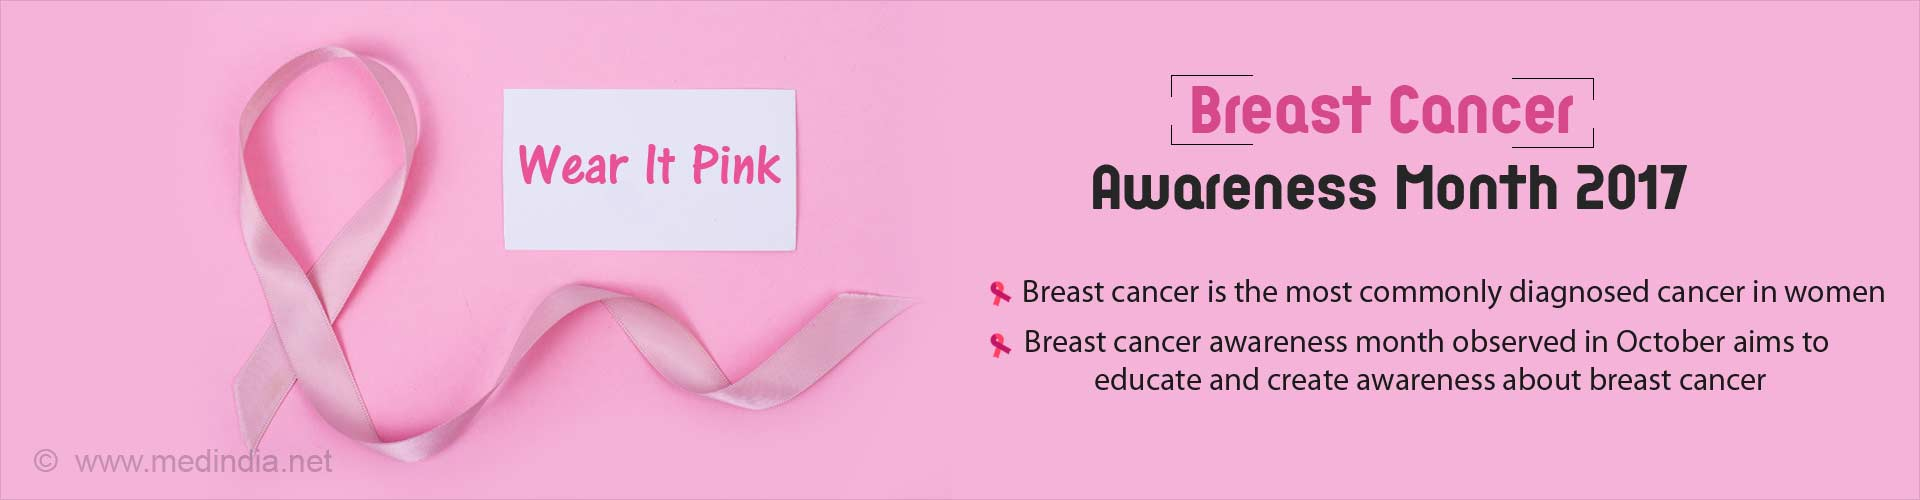 Wear It Pink